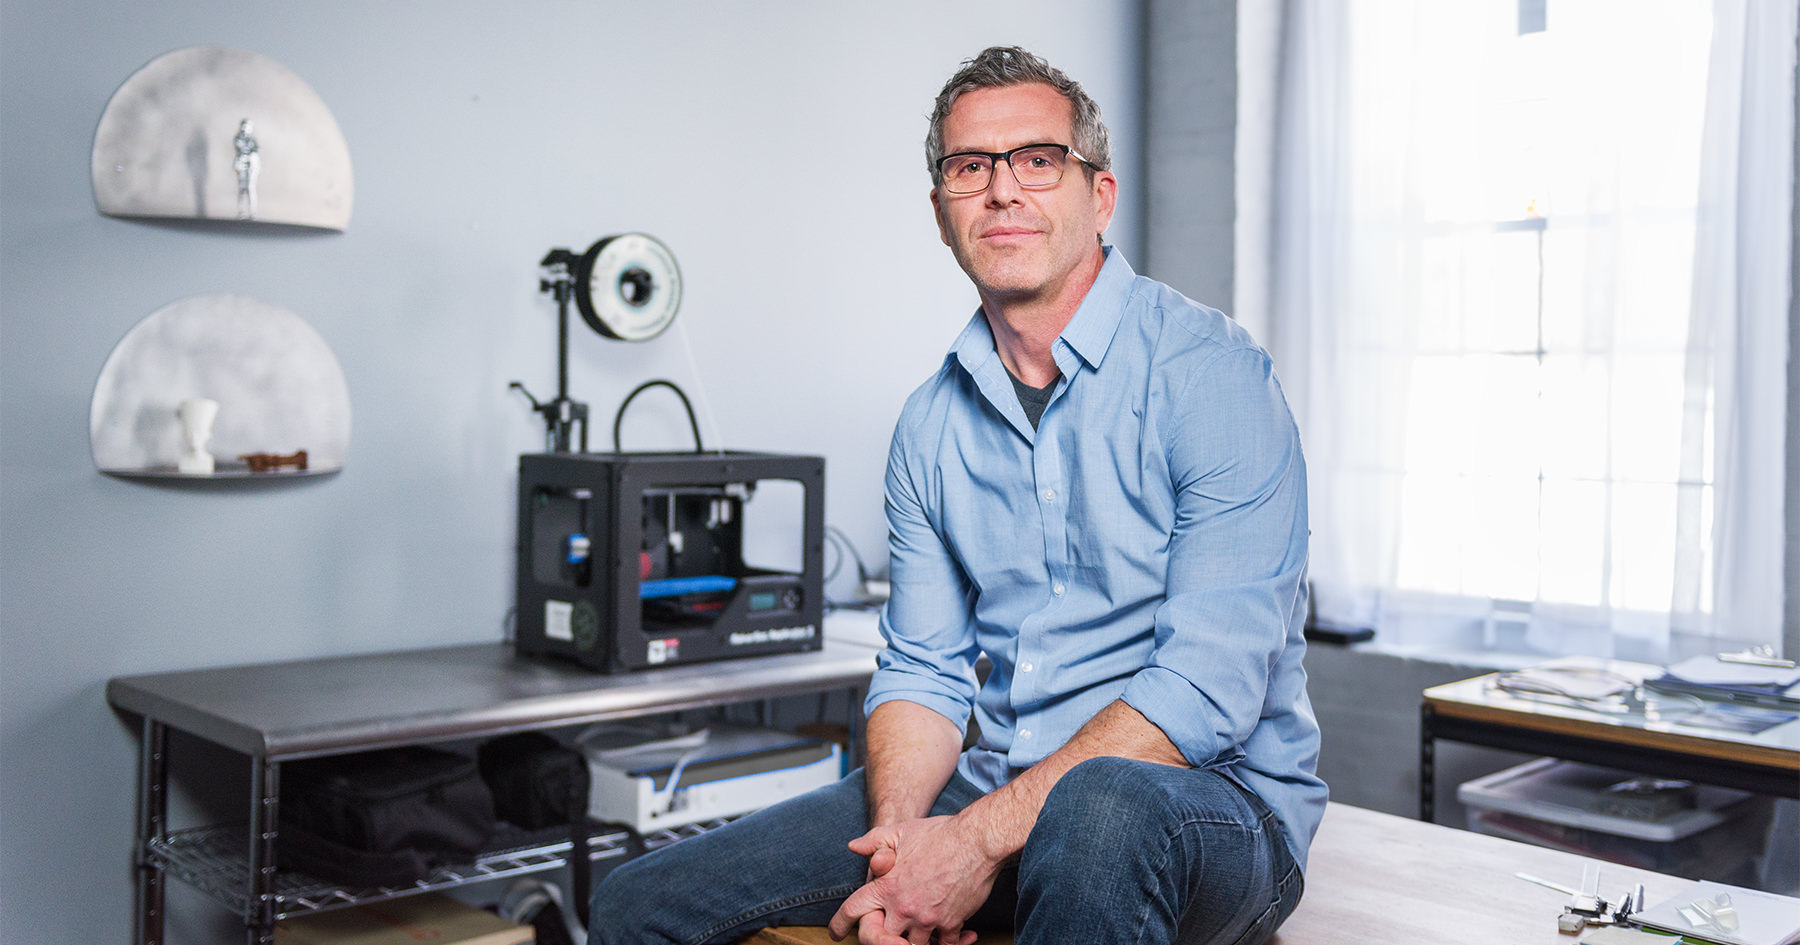 Michael Vickery, owner of the 3D printing service company 'STEAMfruit', photographed by Portland Headshot